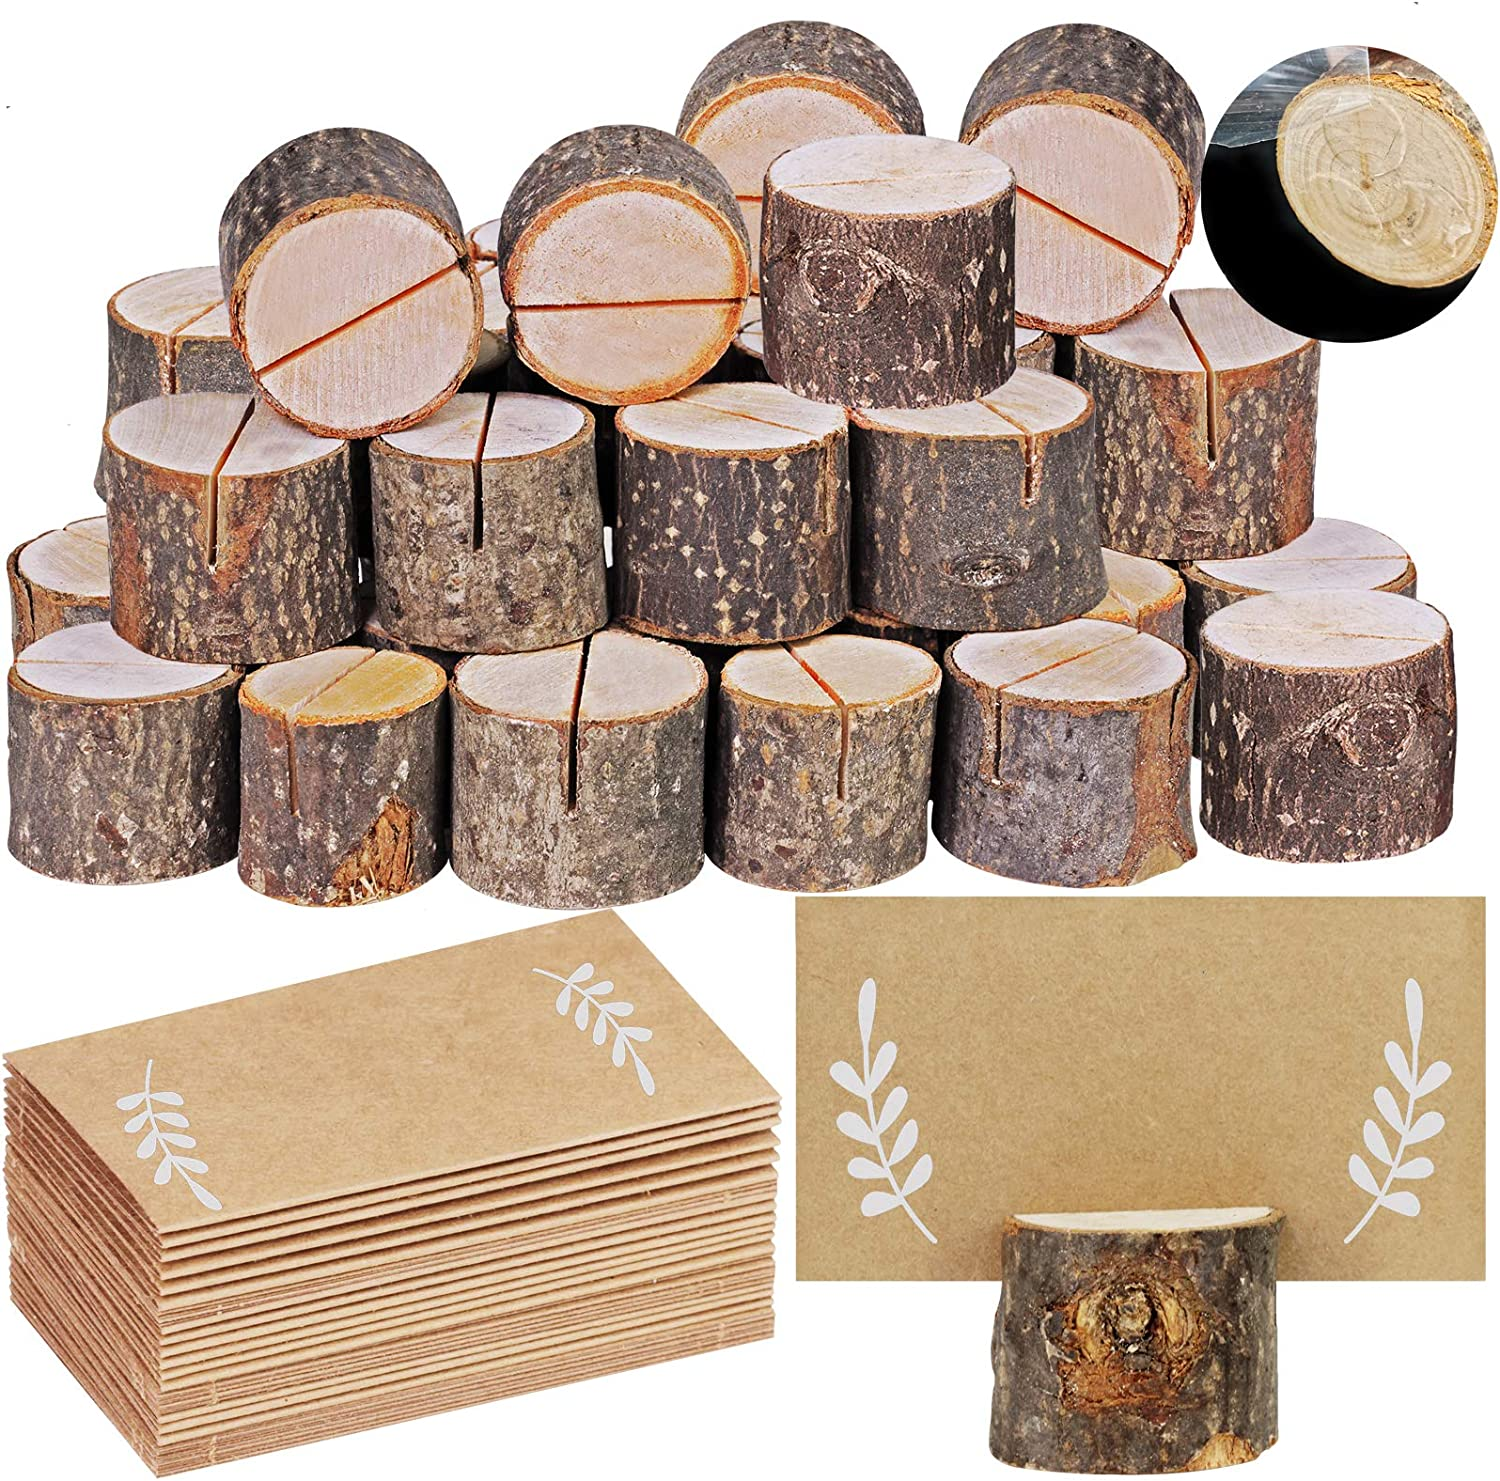 30 Pcs Rustic Wood Place Card Holders Circular Table Numbers Holder Stand Wooden Bark Memo Holder Card Photo Picture Note Clip Holders and Kraft Place Cards Bulk Wedding Party Table Number Sign